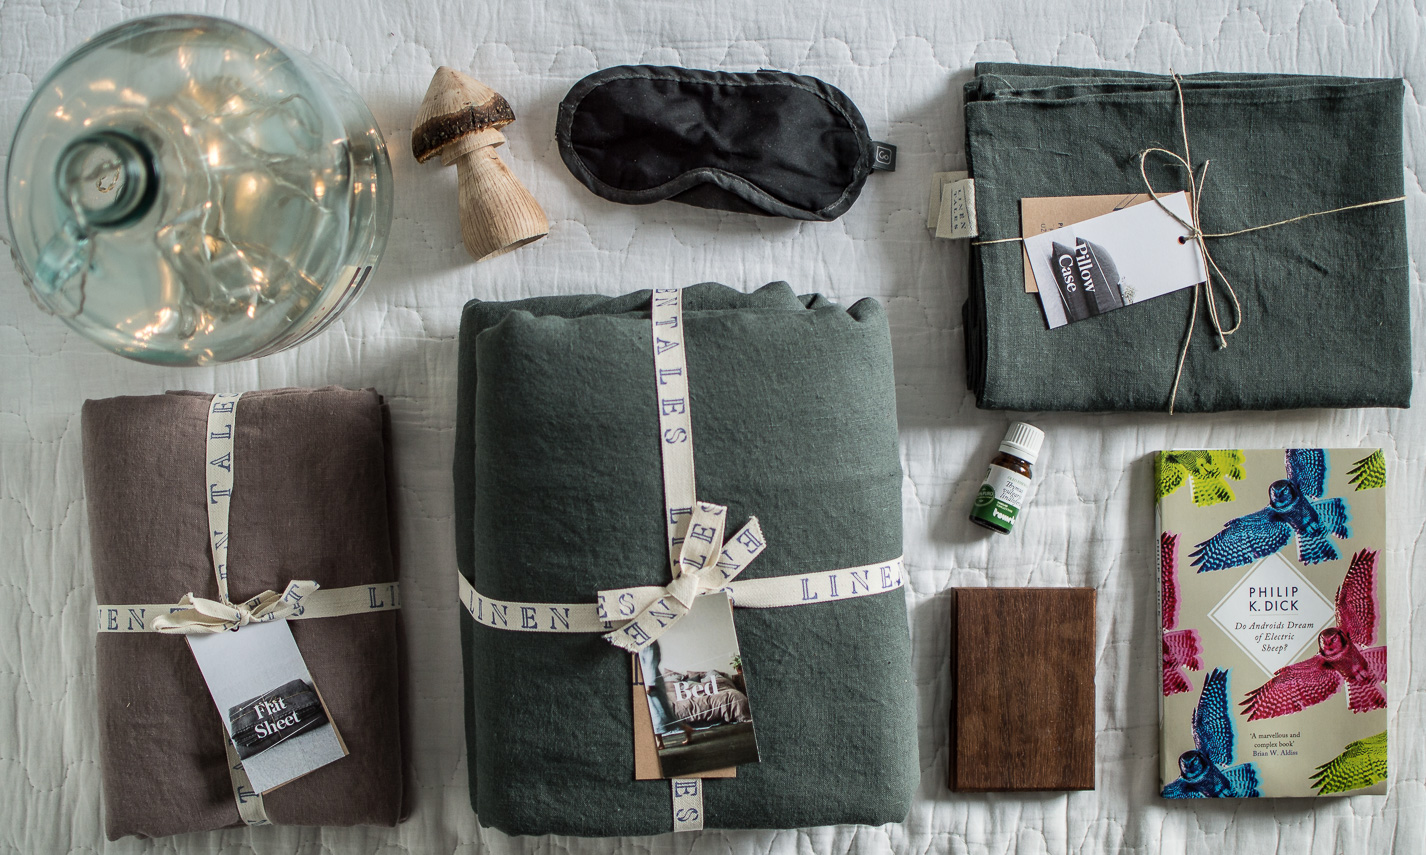 Sleeping survival guide for Nordic countries | Linen bedding by Linen Tales | Forest green duvet linen cover & ashes or roses flat sheet | on Due fili d'erba | Two blades of grass | Photos by Thais FK